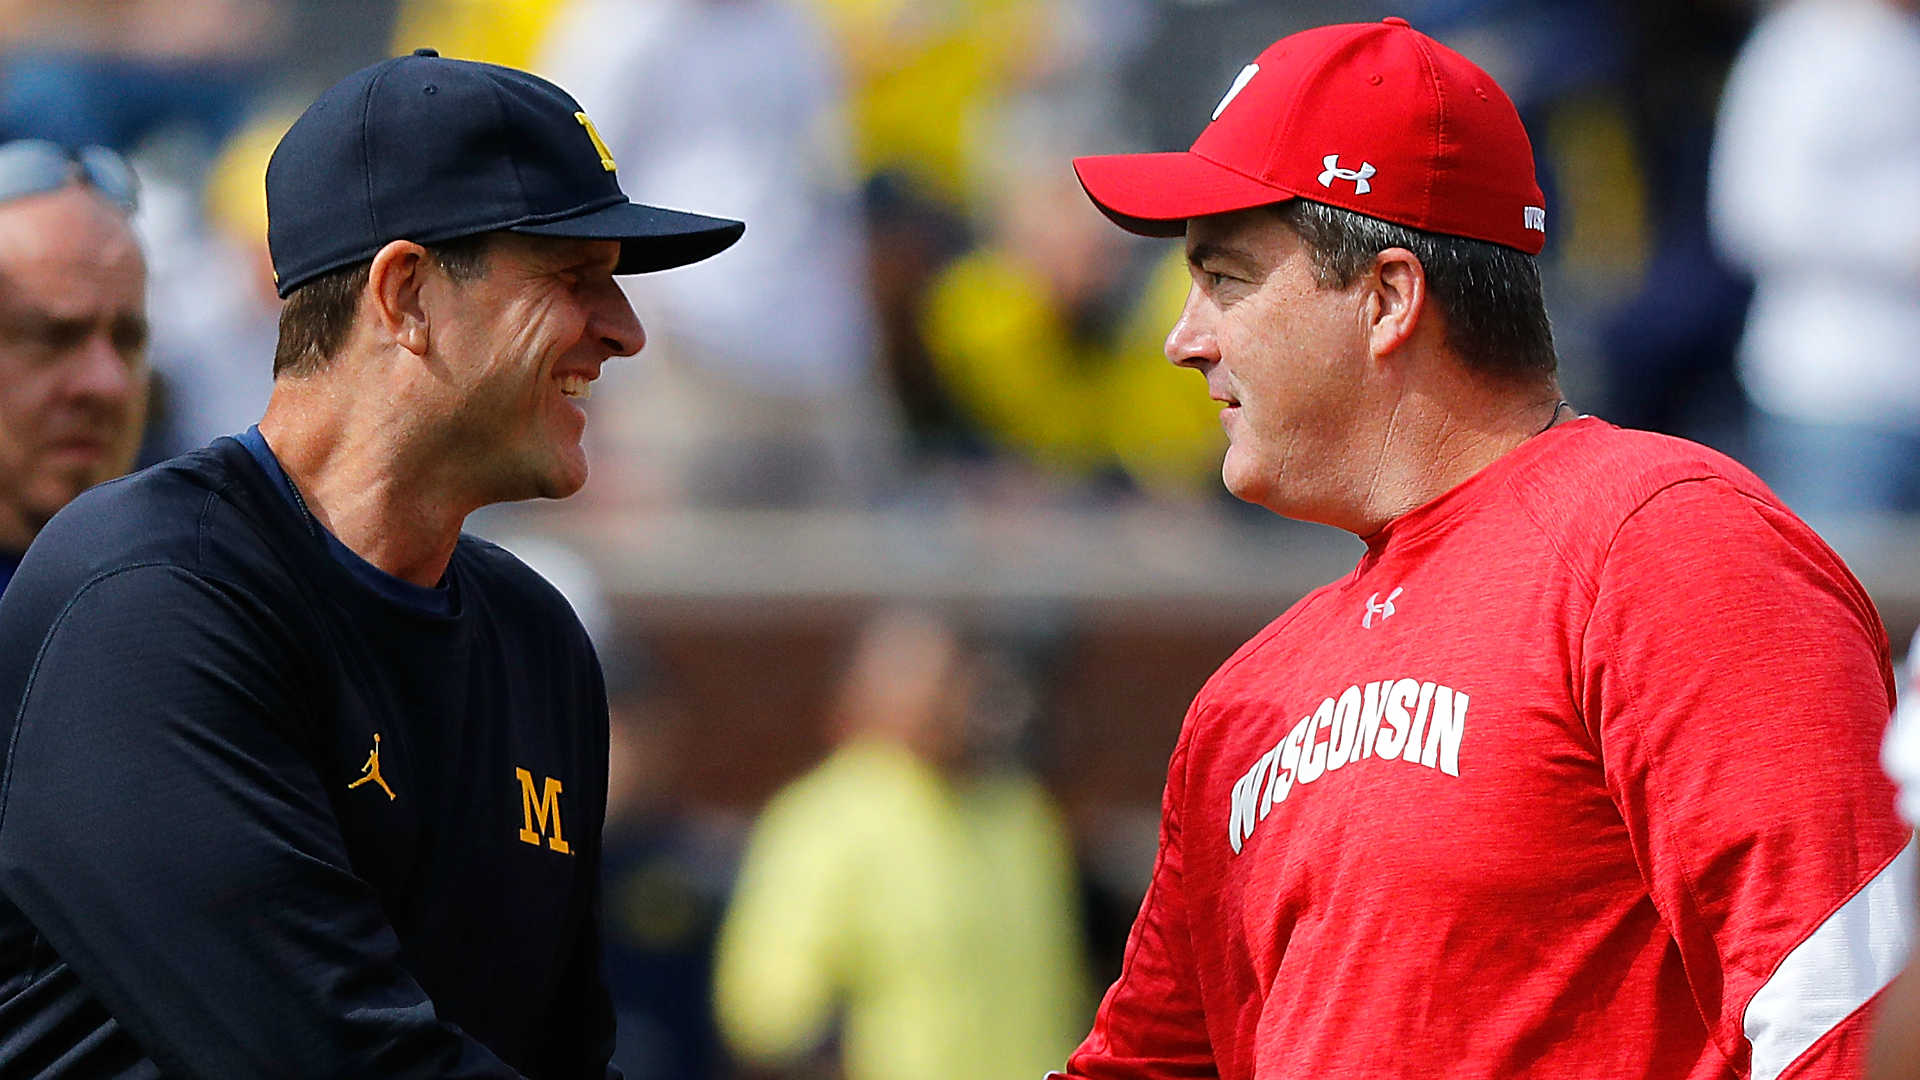 Jim Harbaugh Paul Chryst